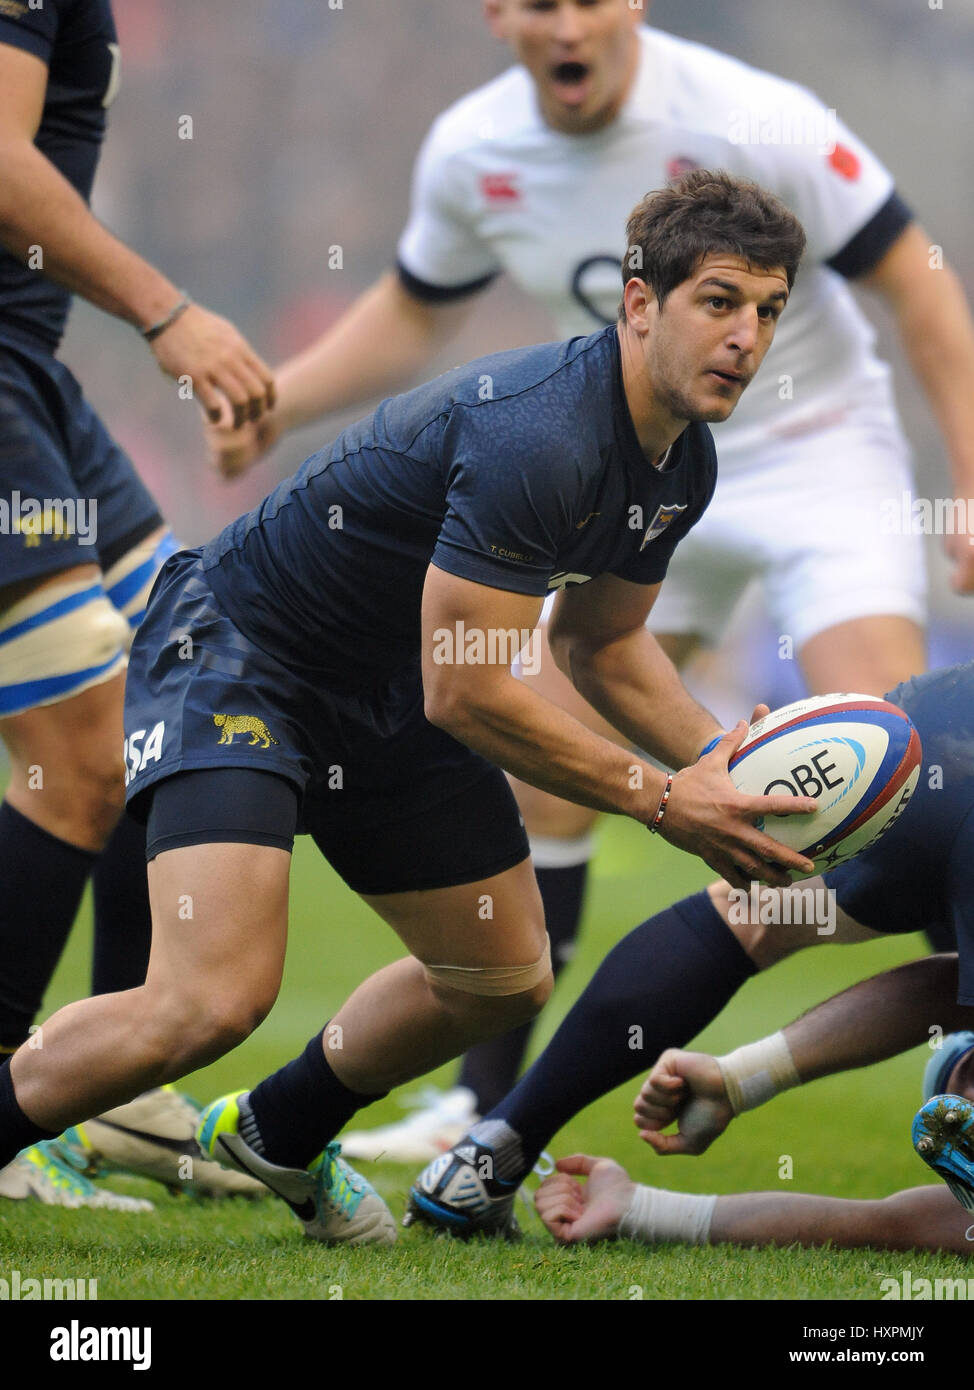 TOMAS CUBELLI ARGENTINA RU ARGENTINA & BELGRANO ATHLETIC TWICKENHAM LONDON ENGLAND 09 November 2013 - Stock Image